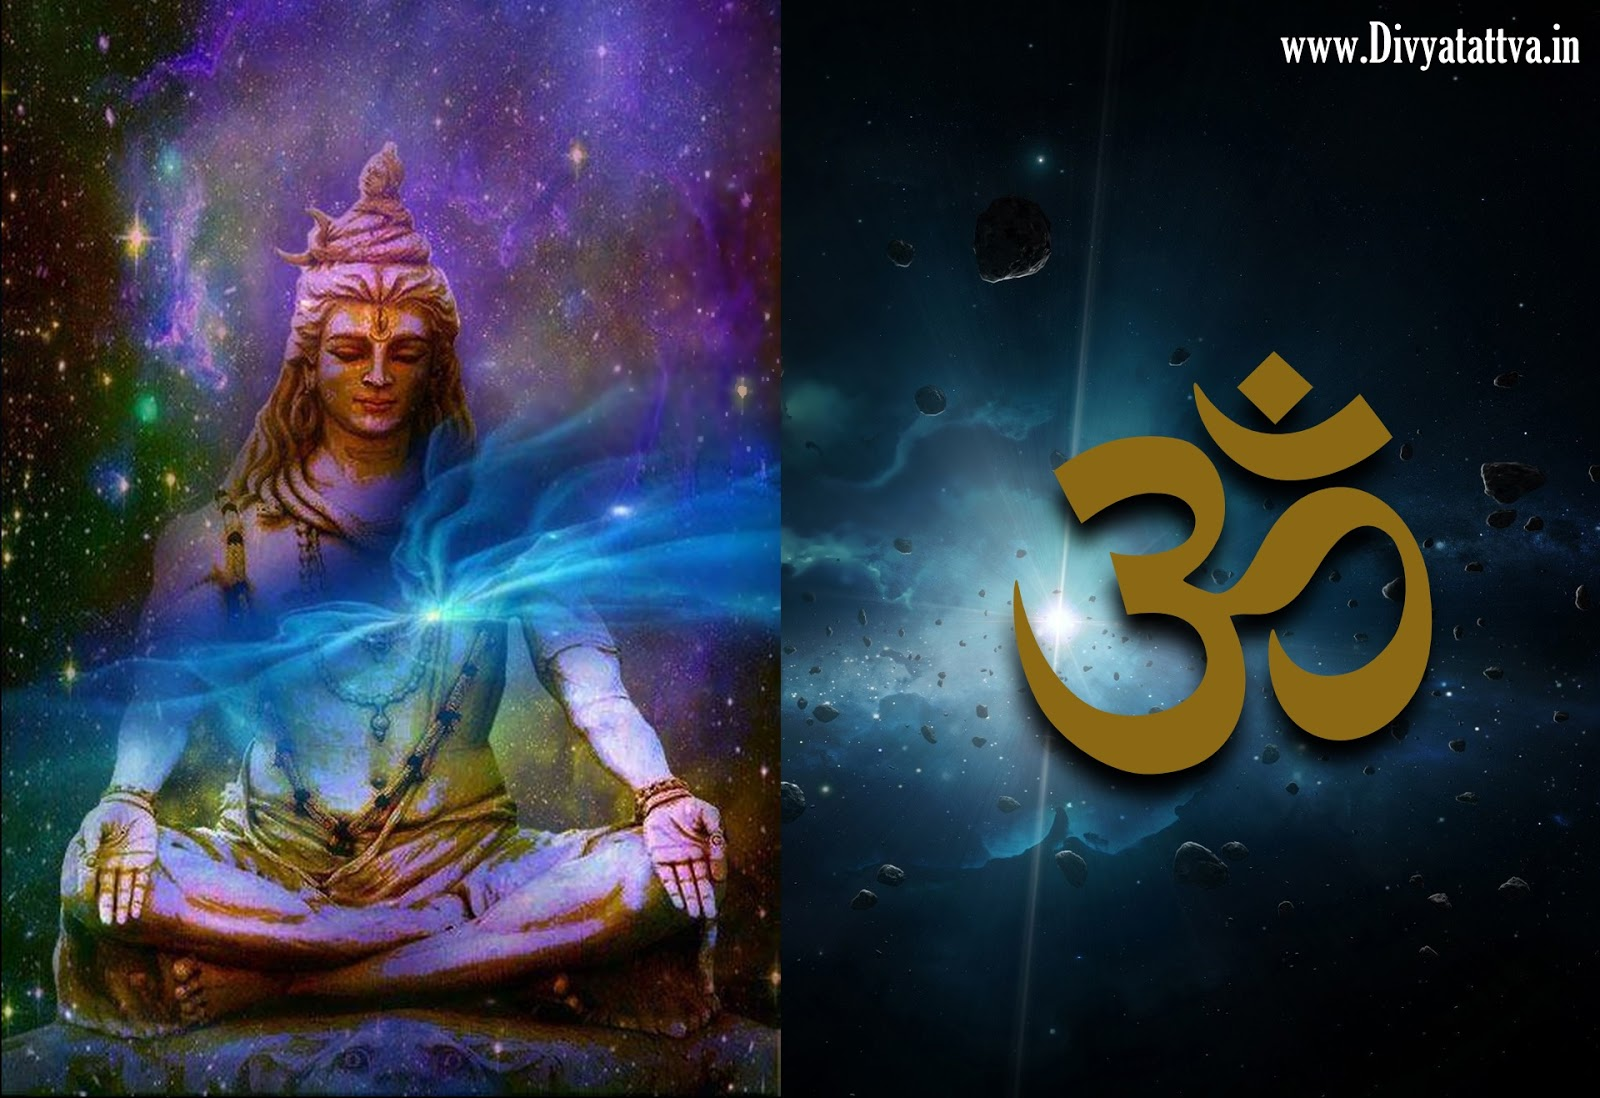 Hindu God Lord Shiva Images Shiv Wallpapers Trinetra Beautiful Pictures Of Lord Shiva 1600x1098 Wallpaper Teahub Io